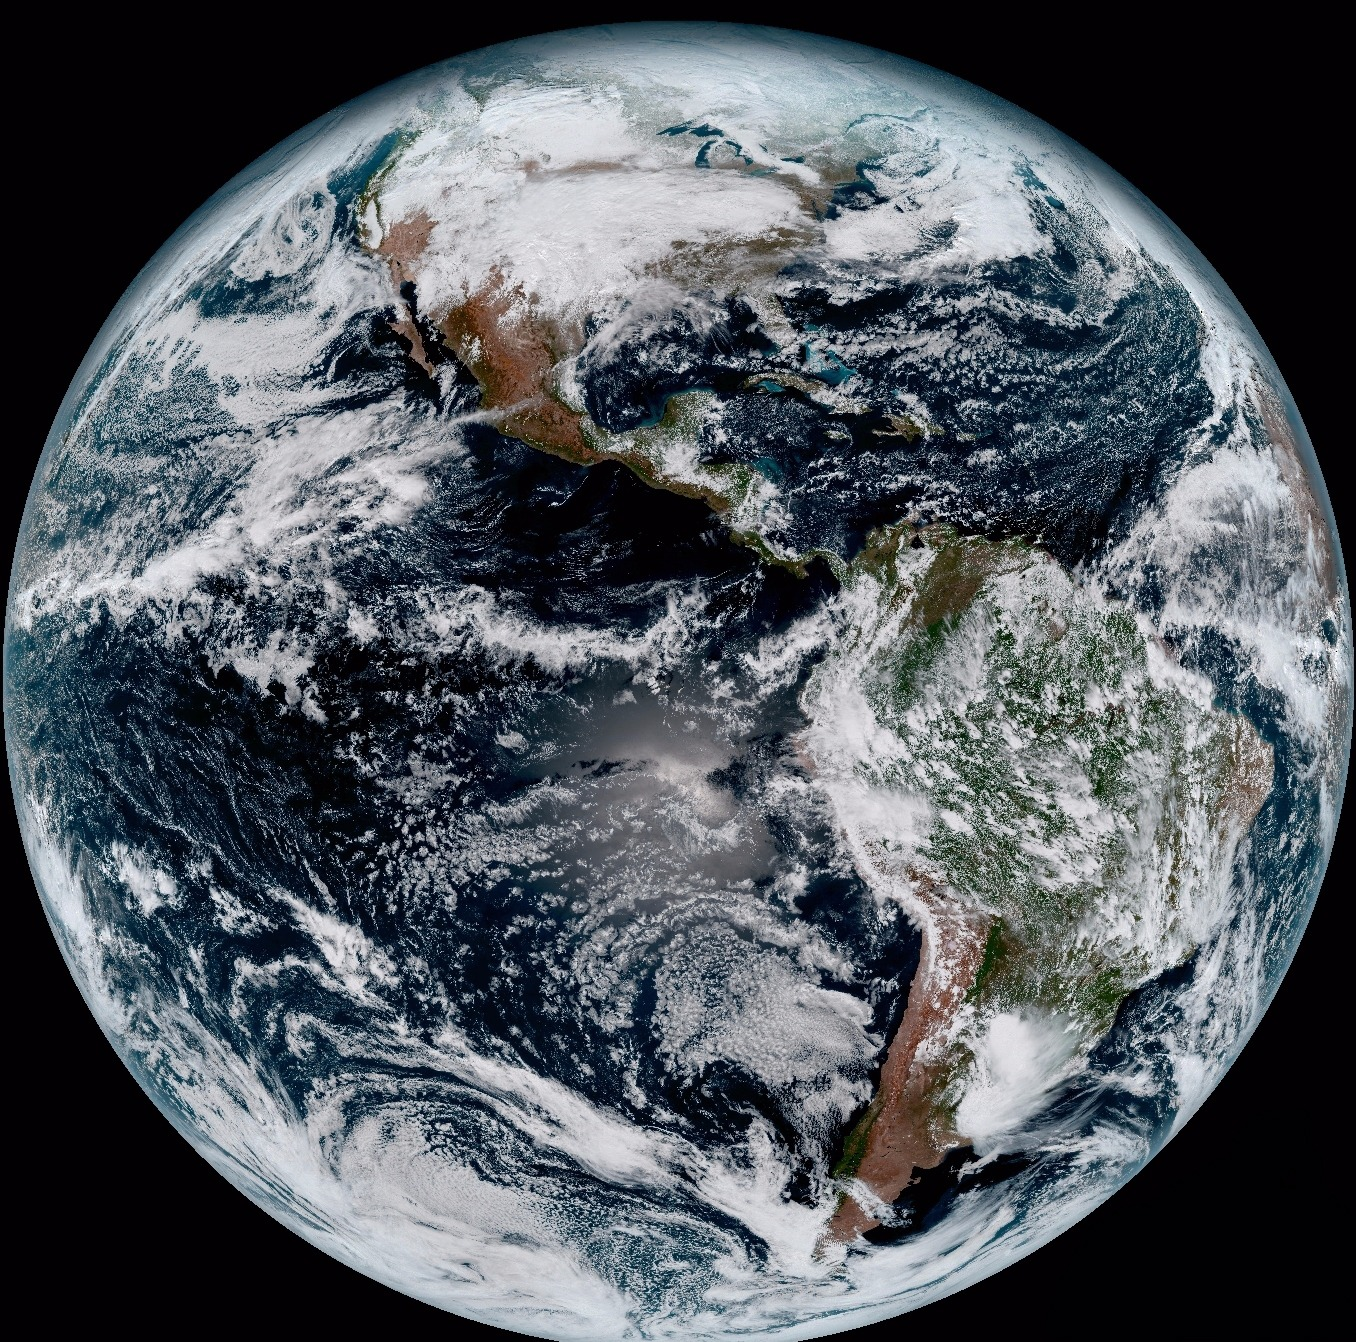 GOES Sends First Images To Earth NASA - World satellite map 2017